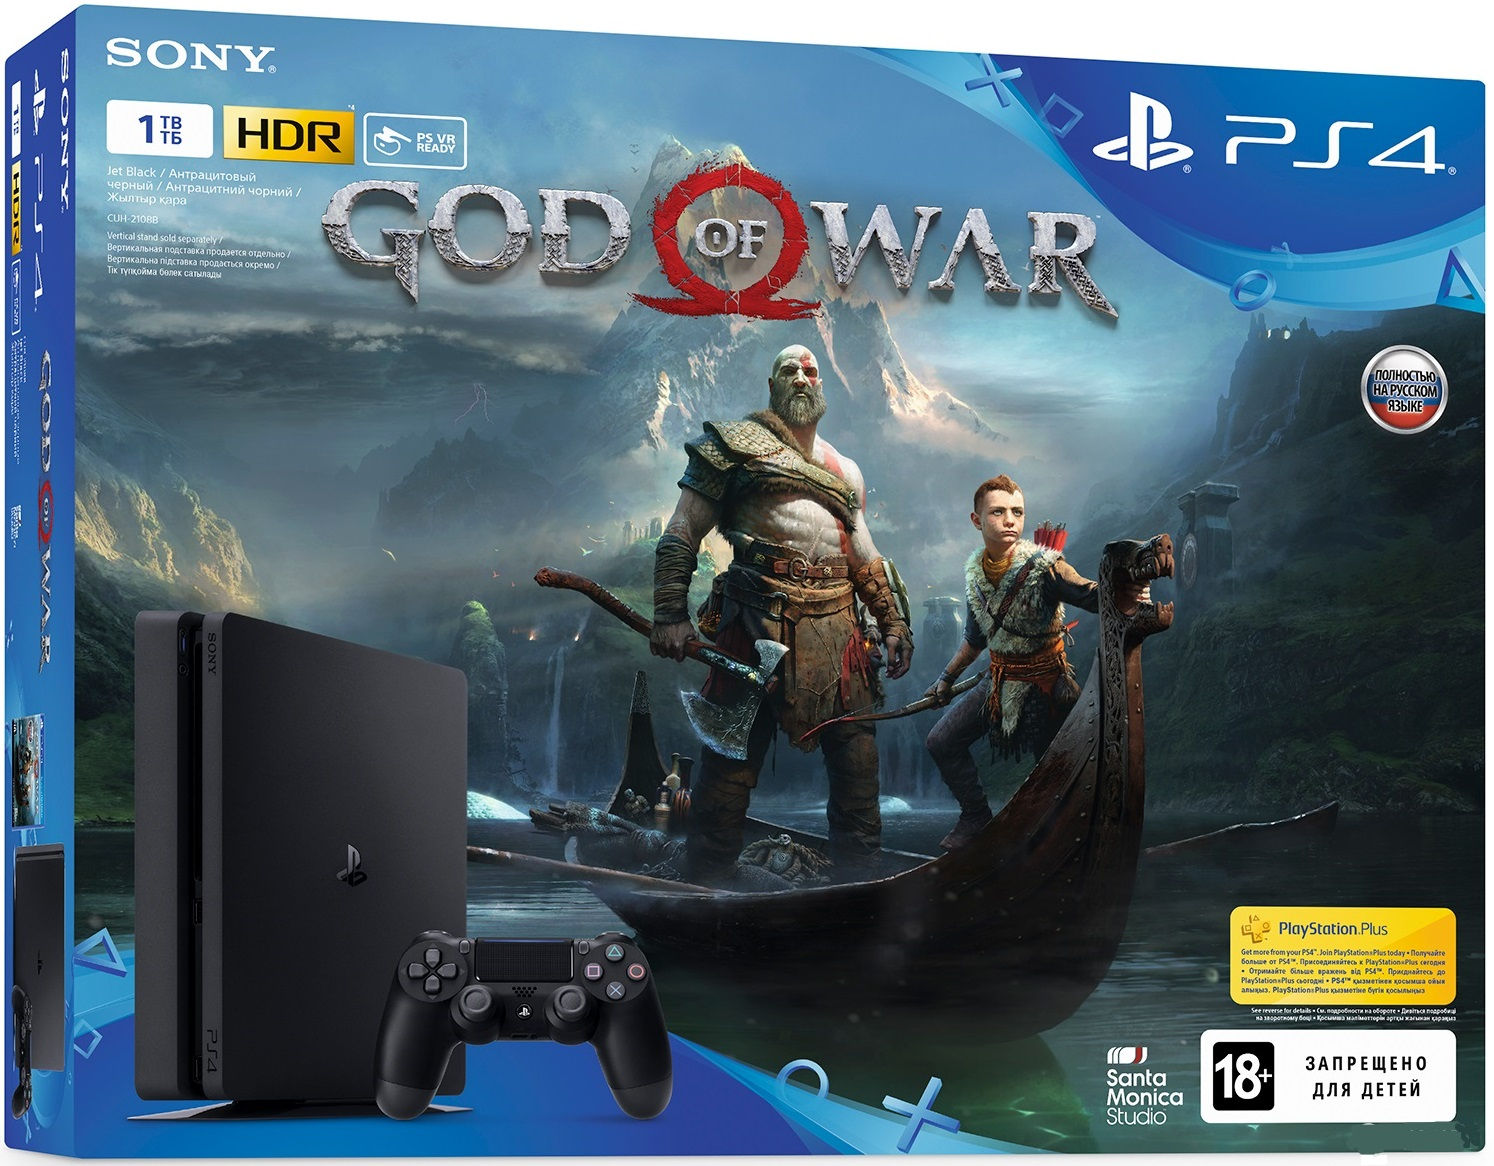 Sony Playstation 4 Slim 1Tb + God of War (CUH-2108B) Официальная